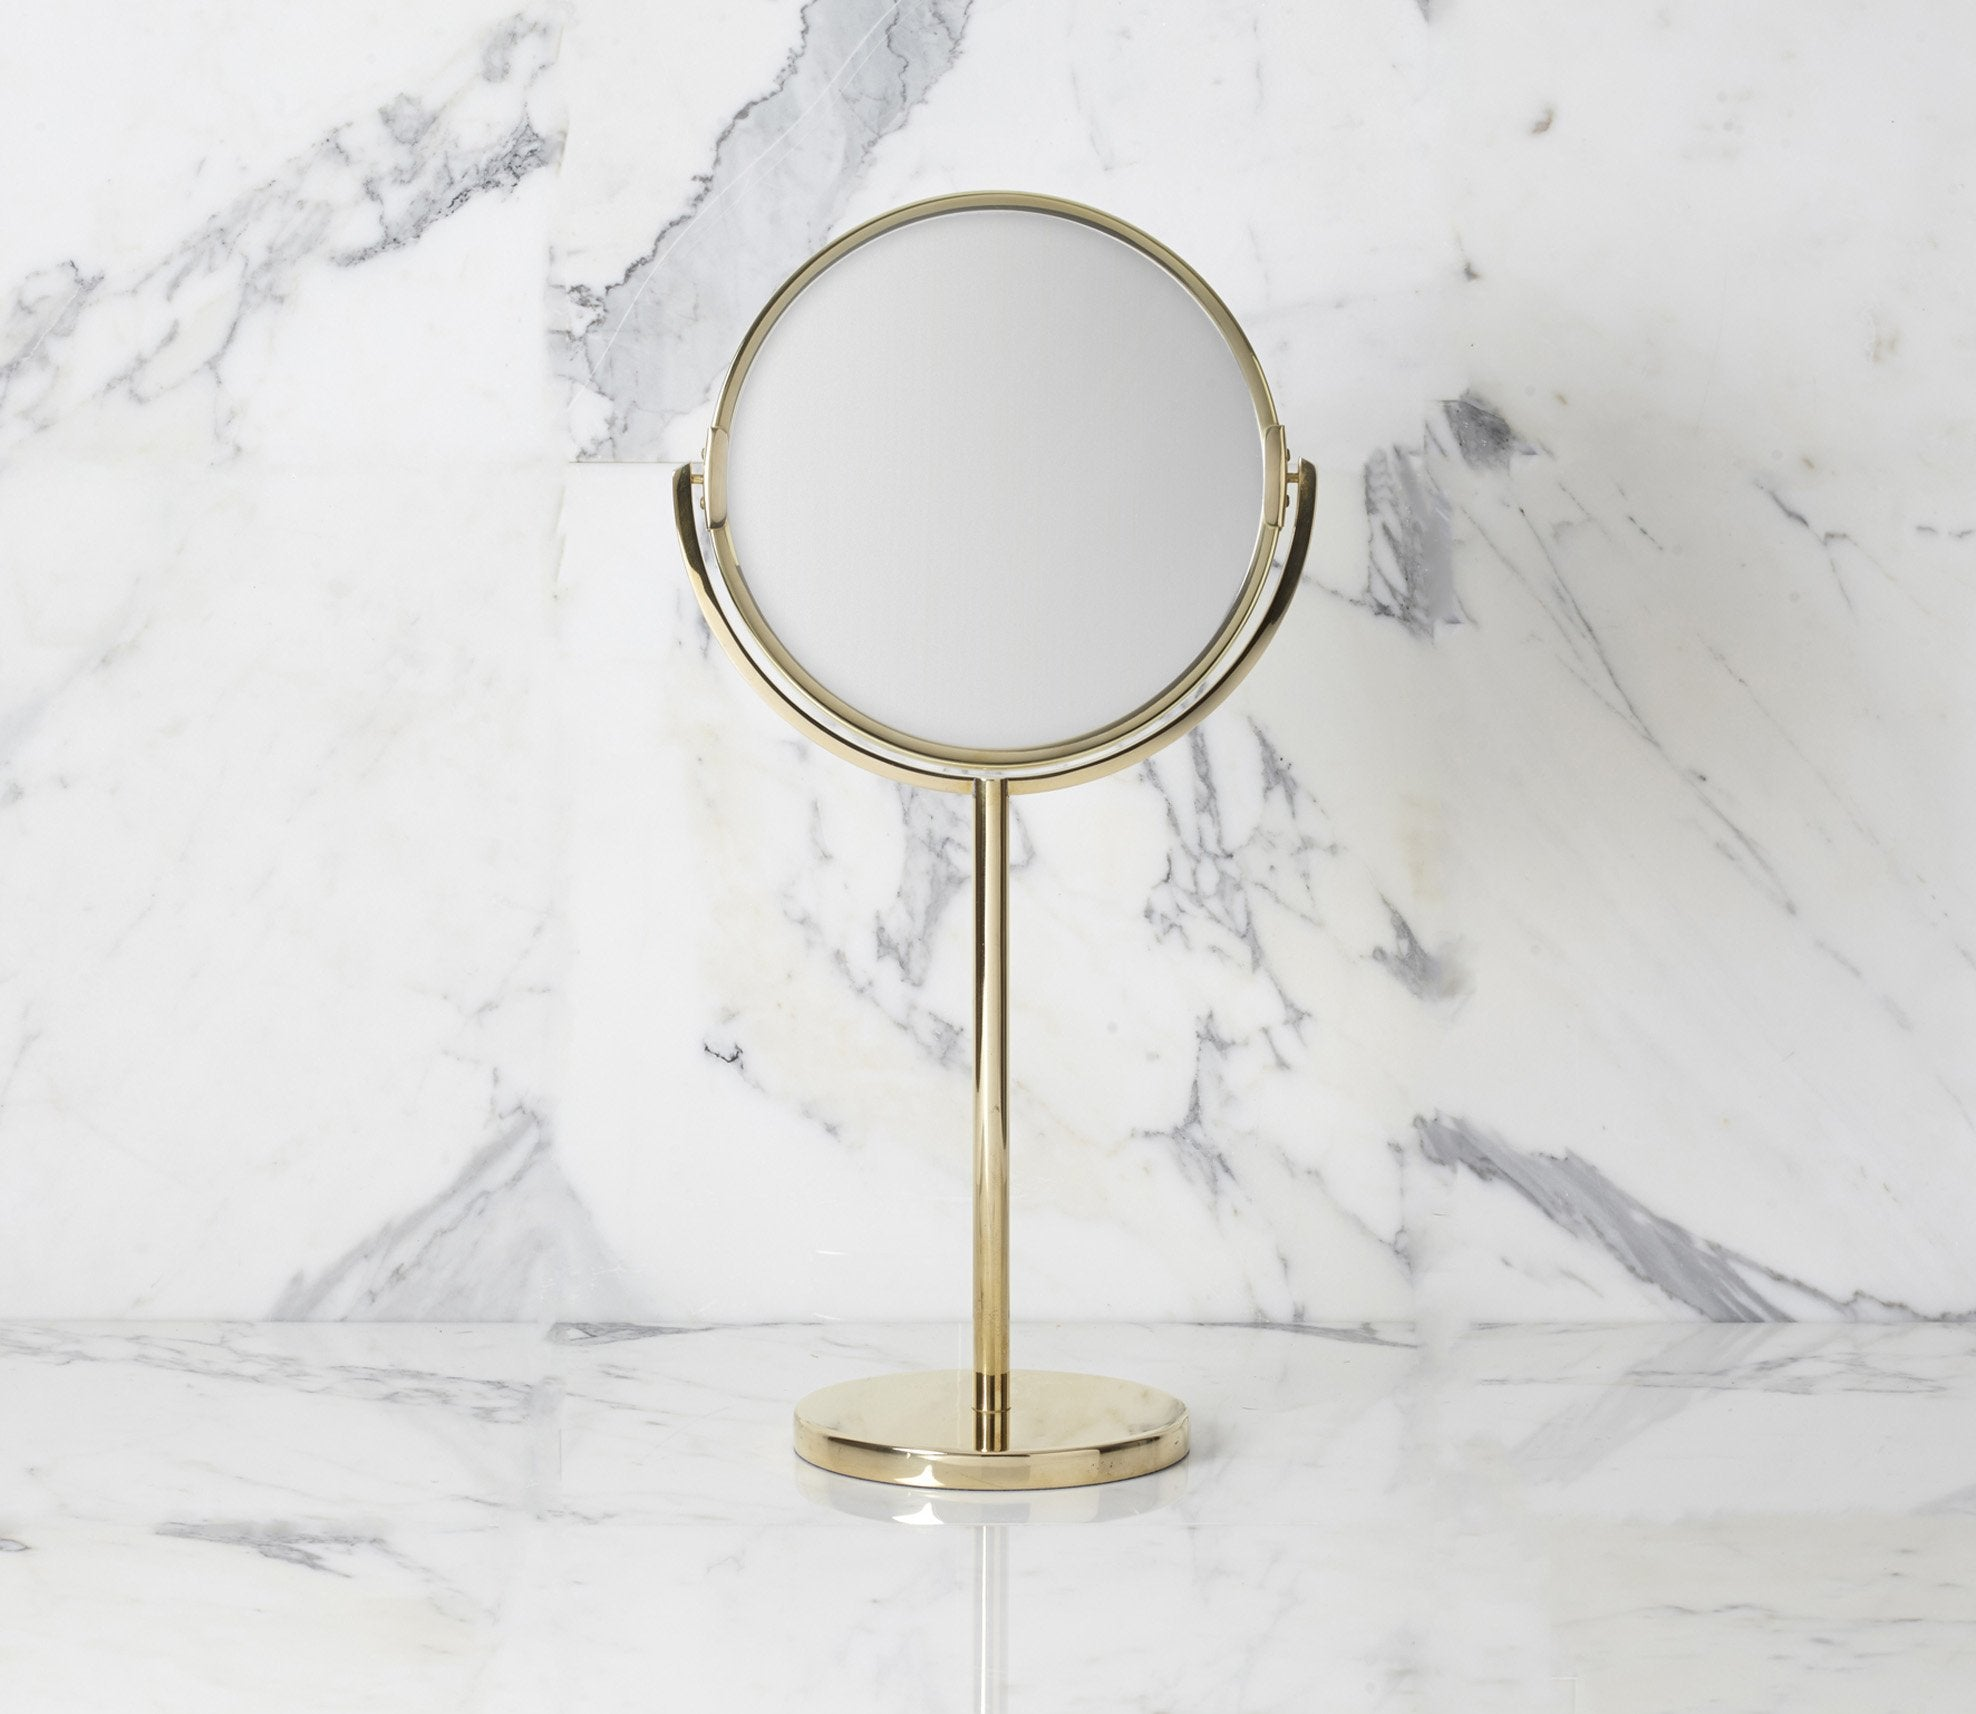 Universal Freestanding Mirror Product Image 1